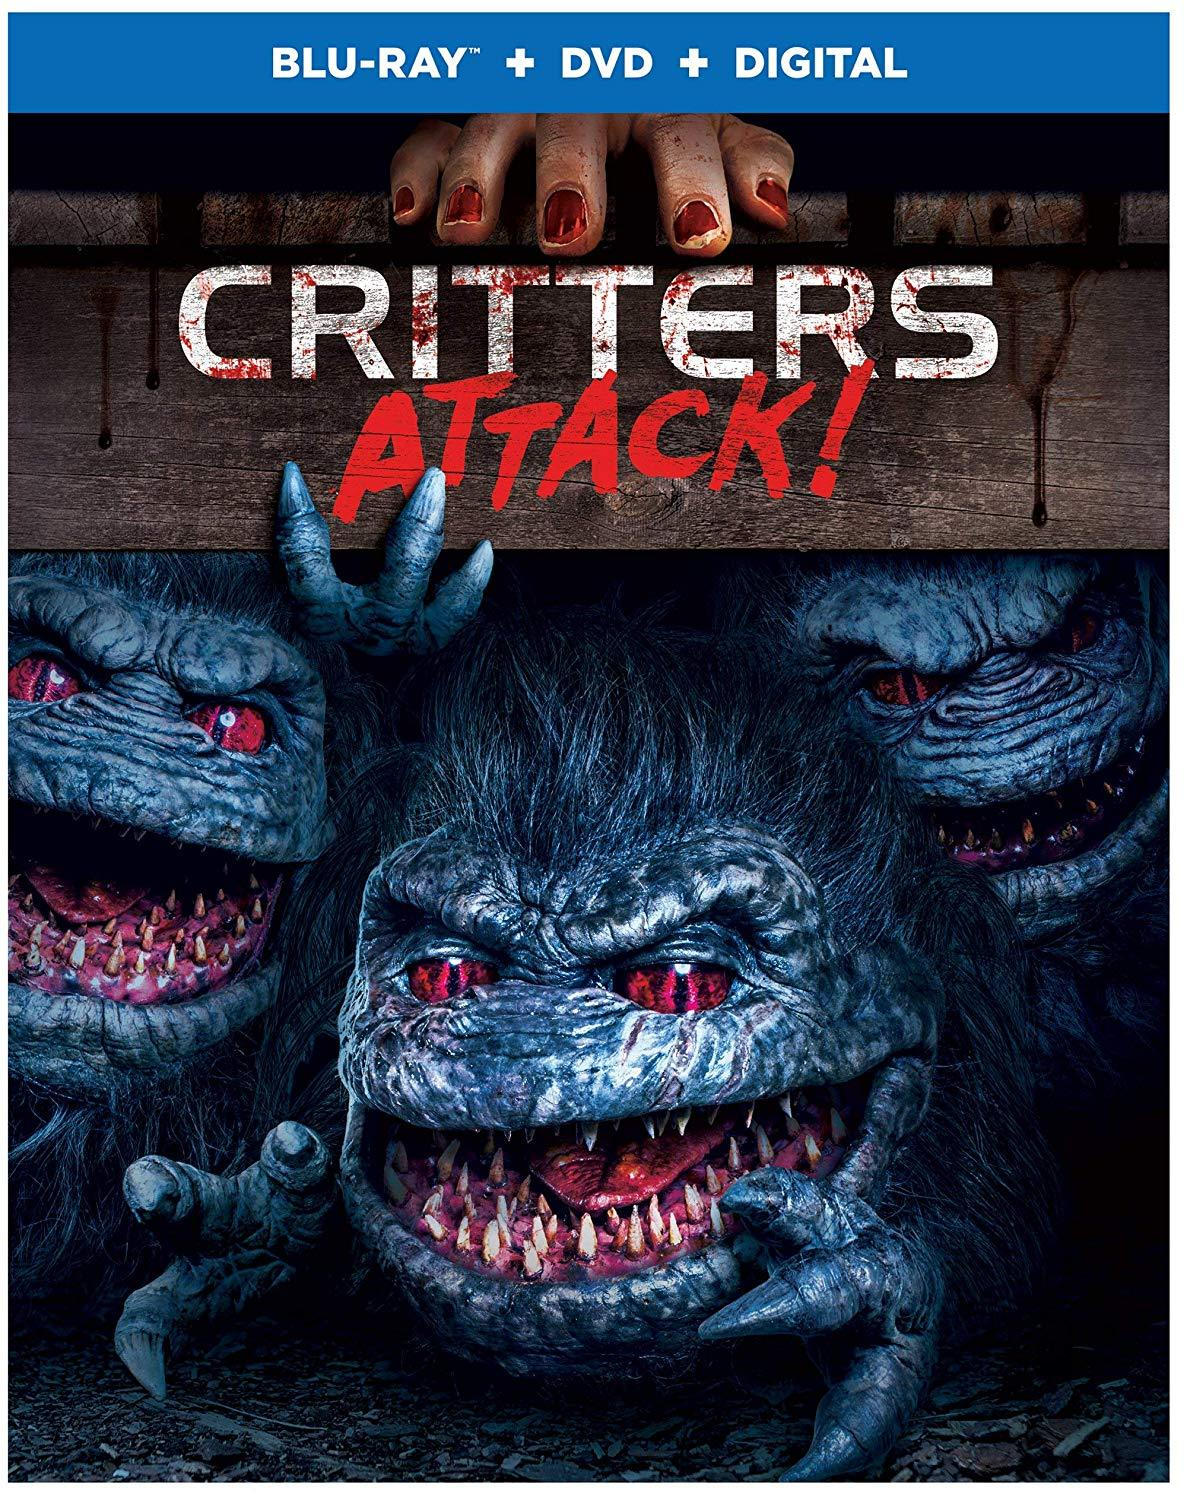 CRITTERS ATTACK! is now available for  pre-order on Amazon !  I would like to point out that there's a special feature that entails me talking to a Critter. And that Critter may also be voiced by me.   SPECIAL FEATURES   Engineering Gore; Designing Critters (featurette)  Critters: An Out-of-this-World Experience (featurette)  The Critter Ball (featurette)  Scene Specific Commentary with Director Bobby Miller and a Critter